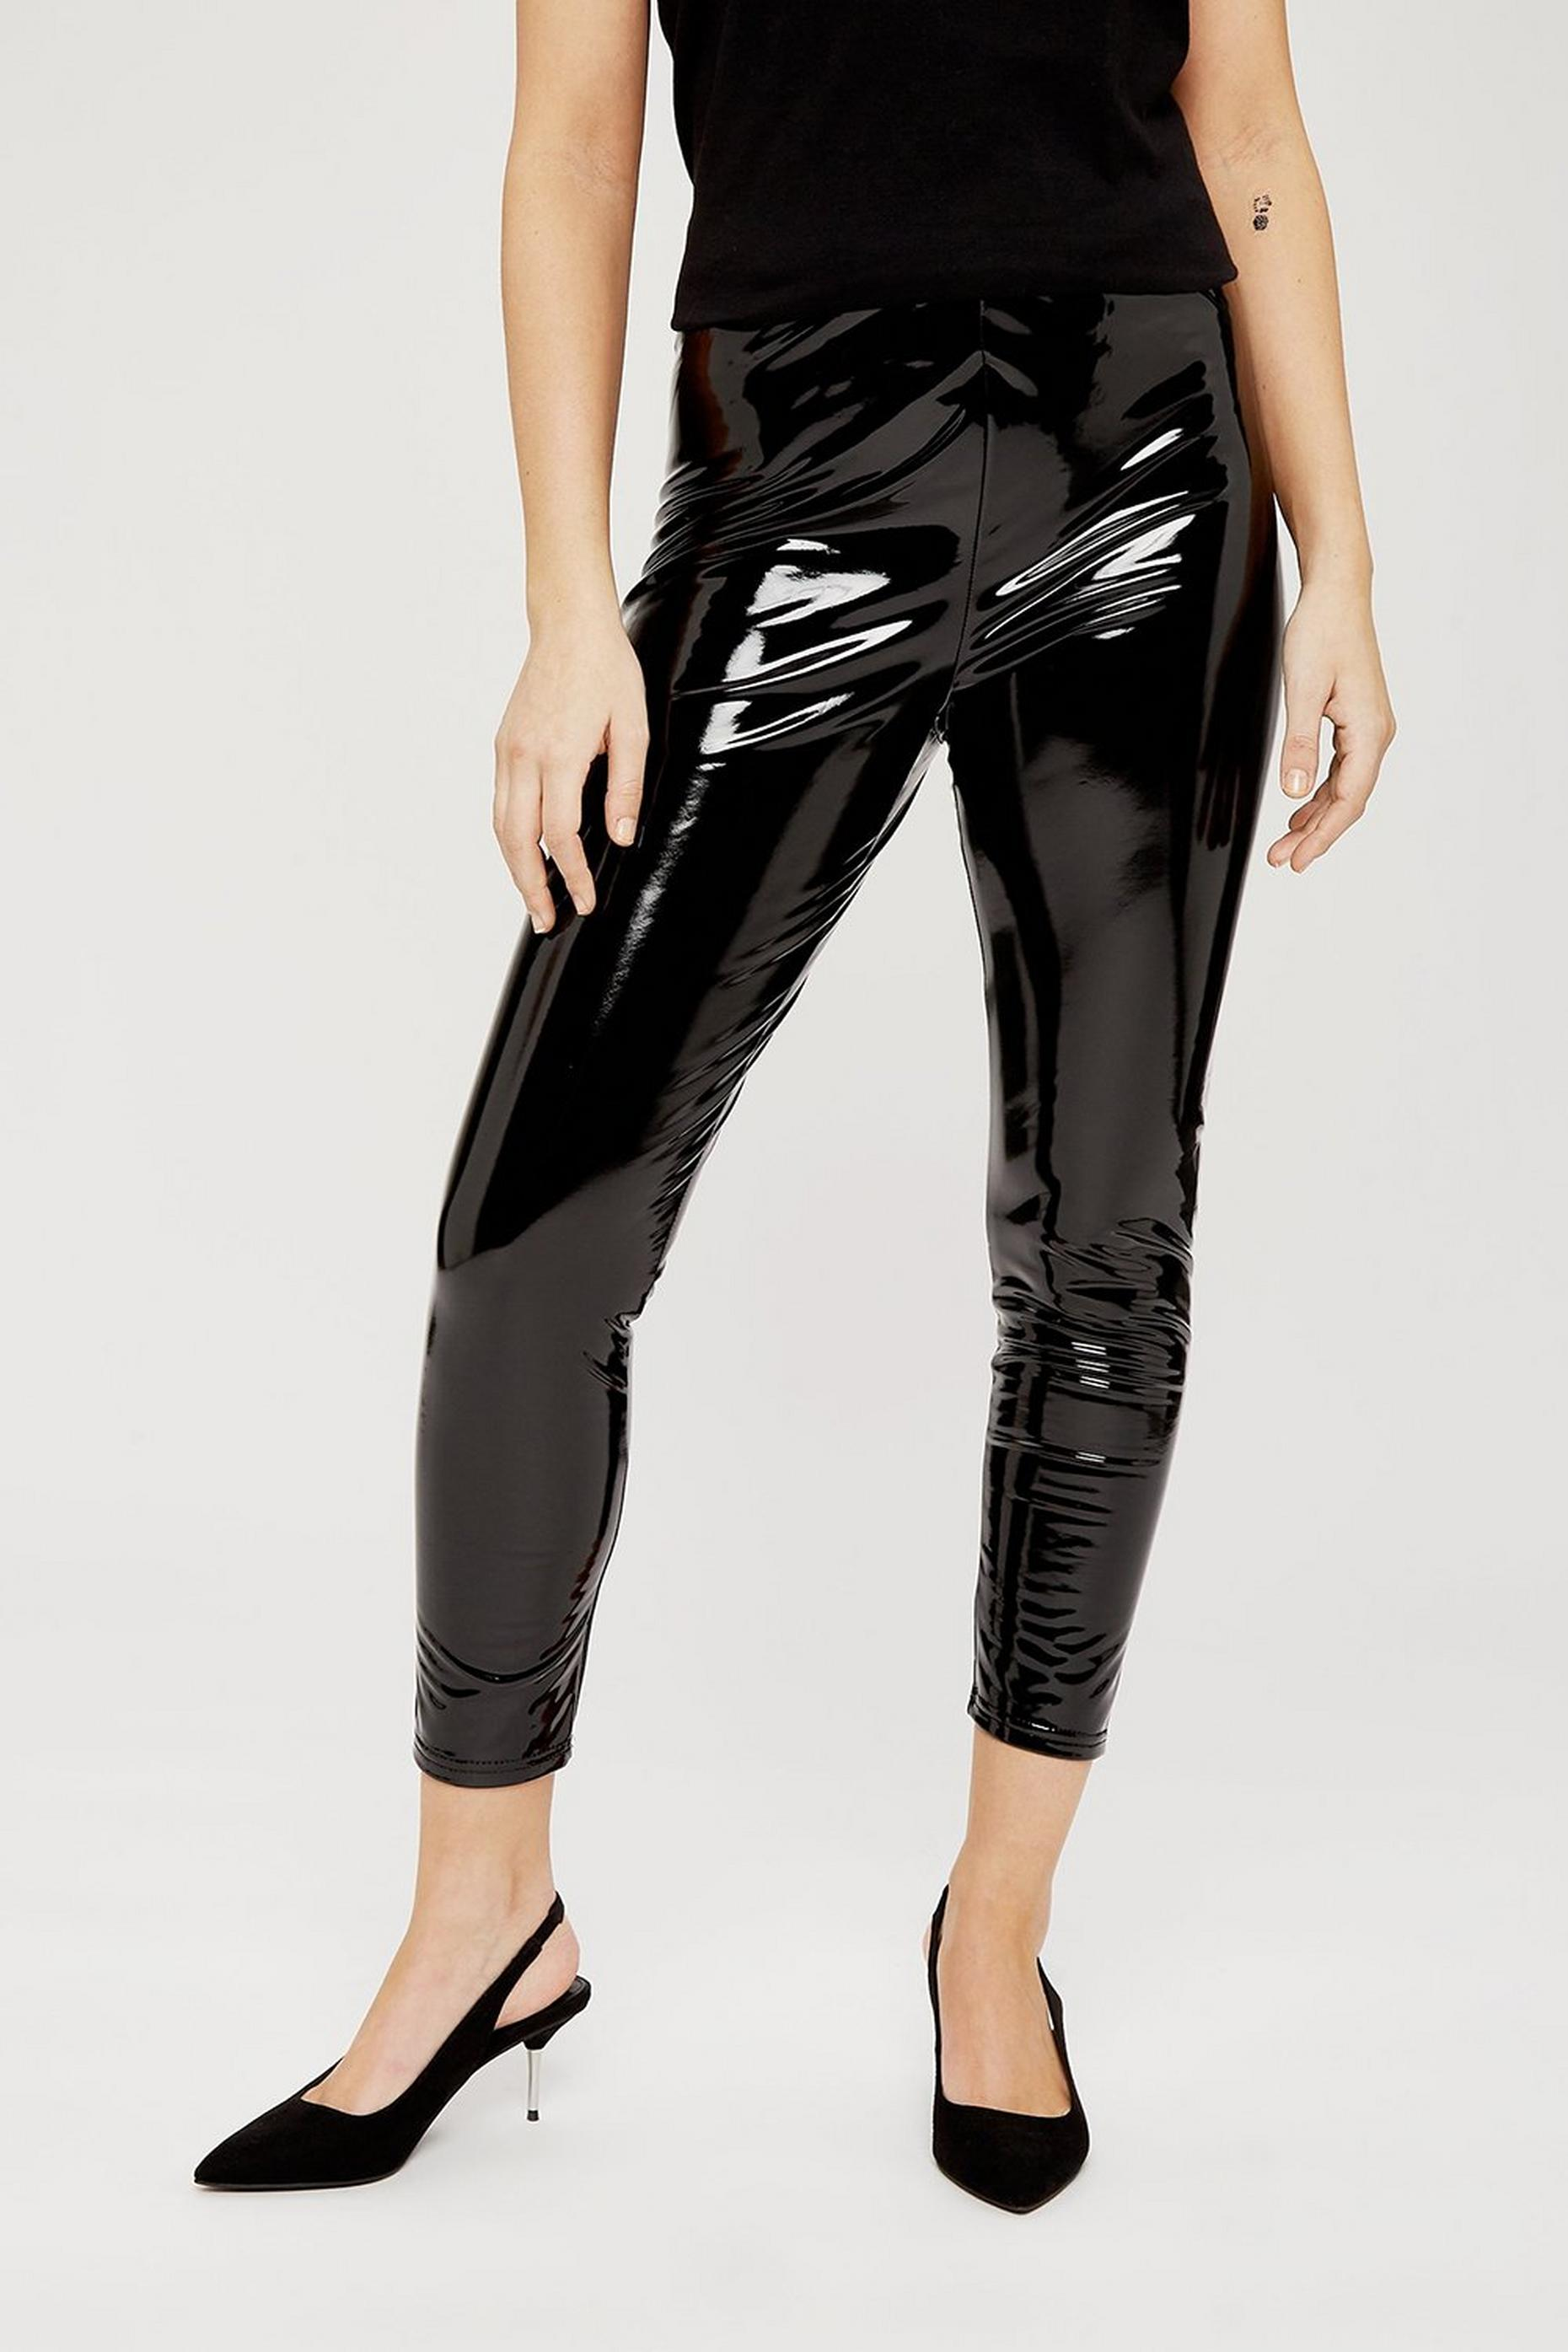 Petites Black Vinyl Leggings